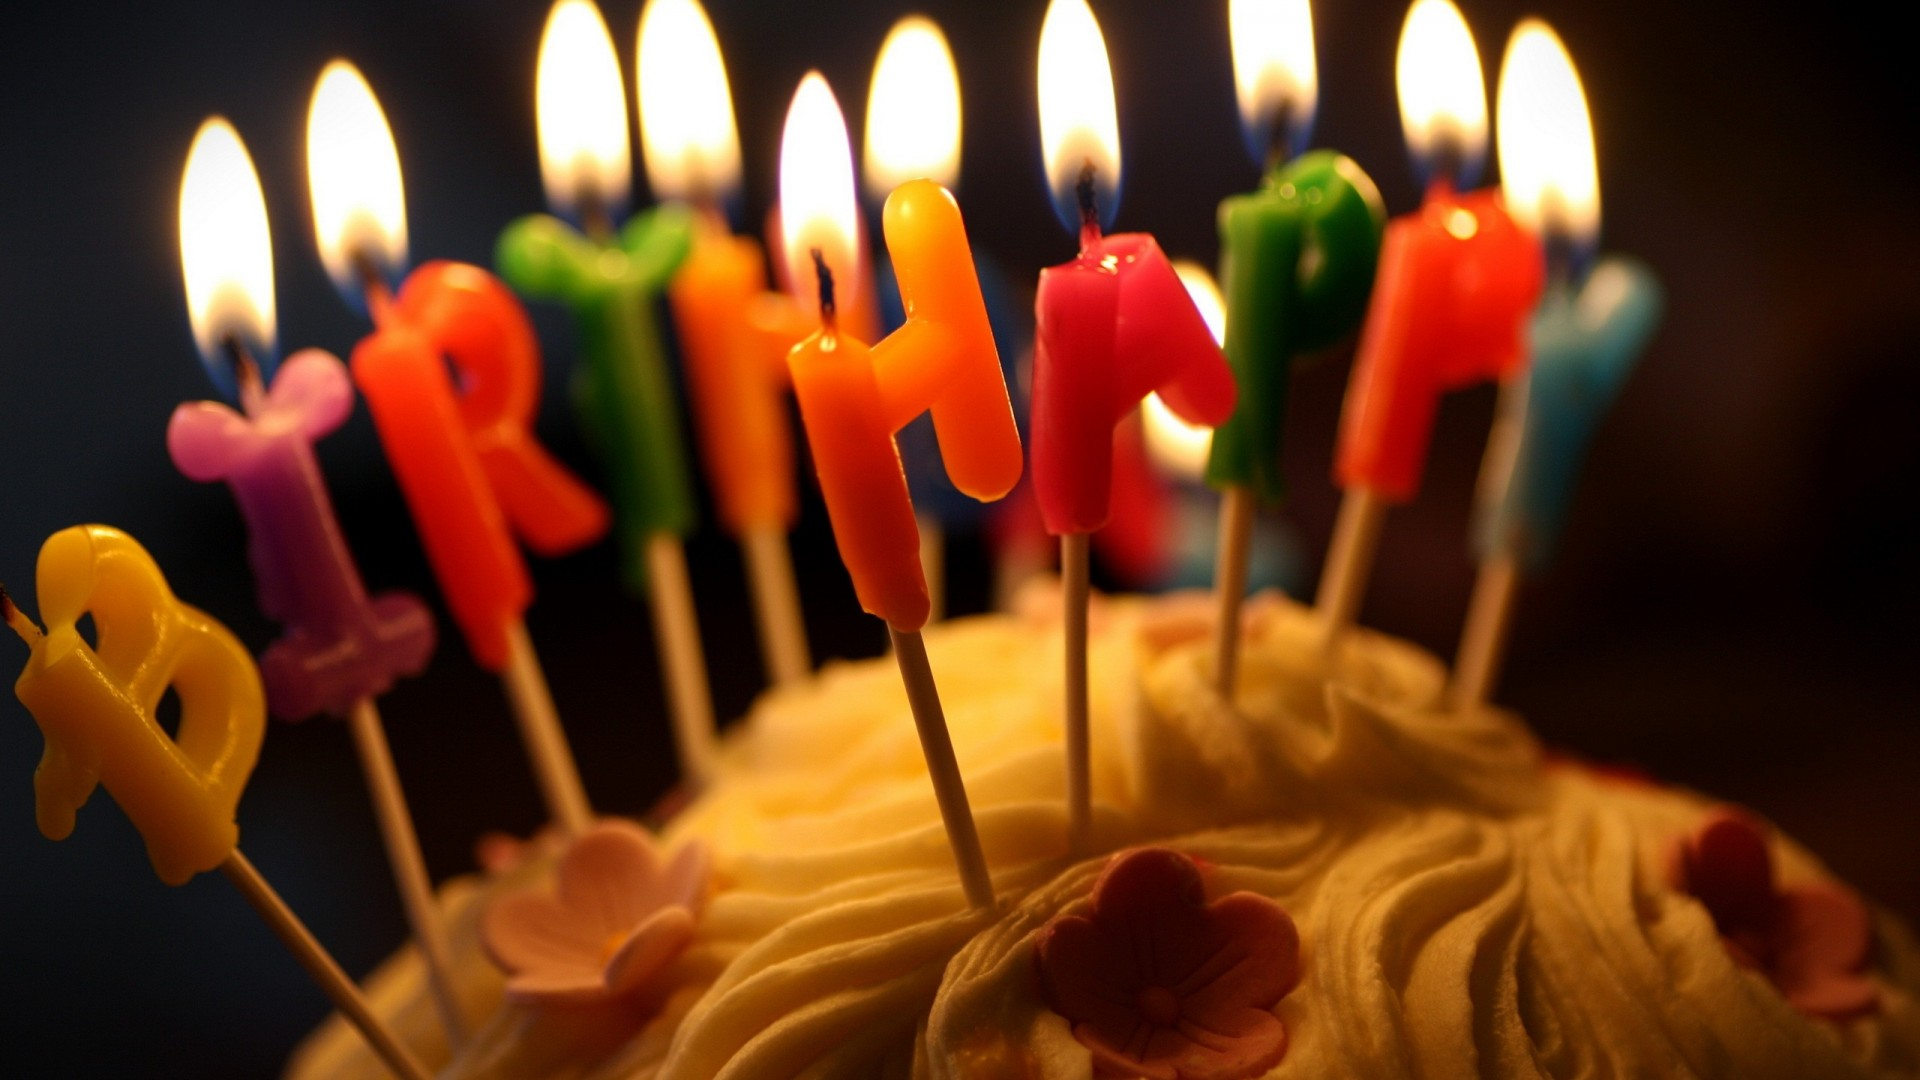 birthday candles wallpaper ; Free-Birthday-Cake-Candles-Wallpaper